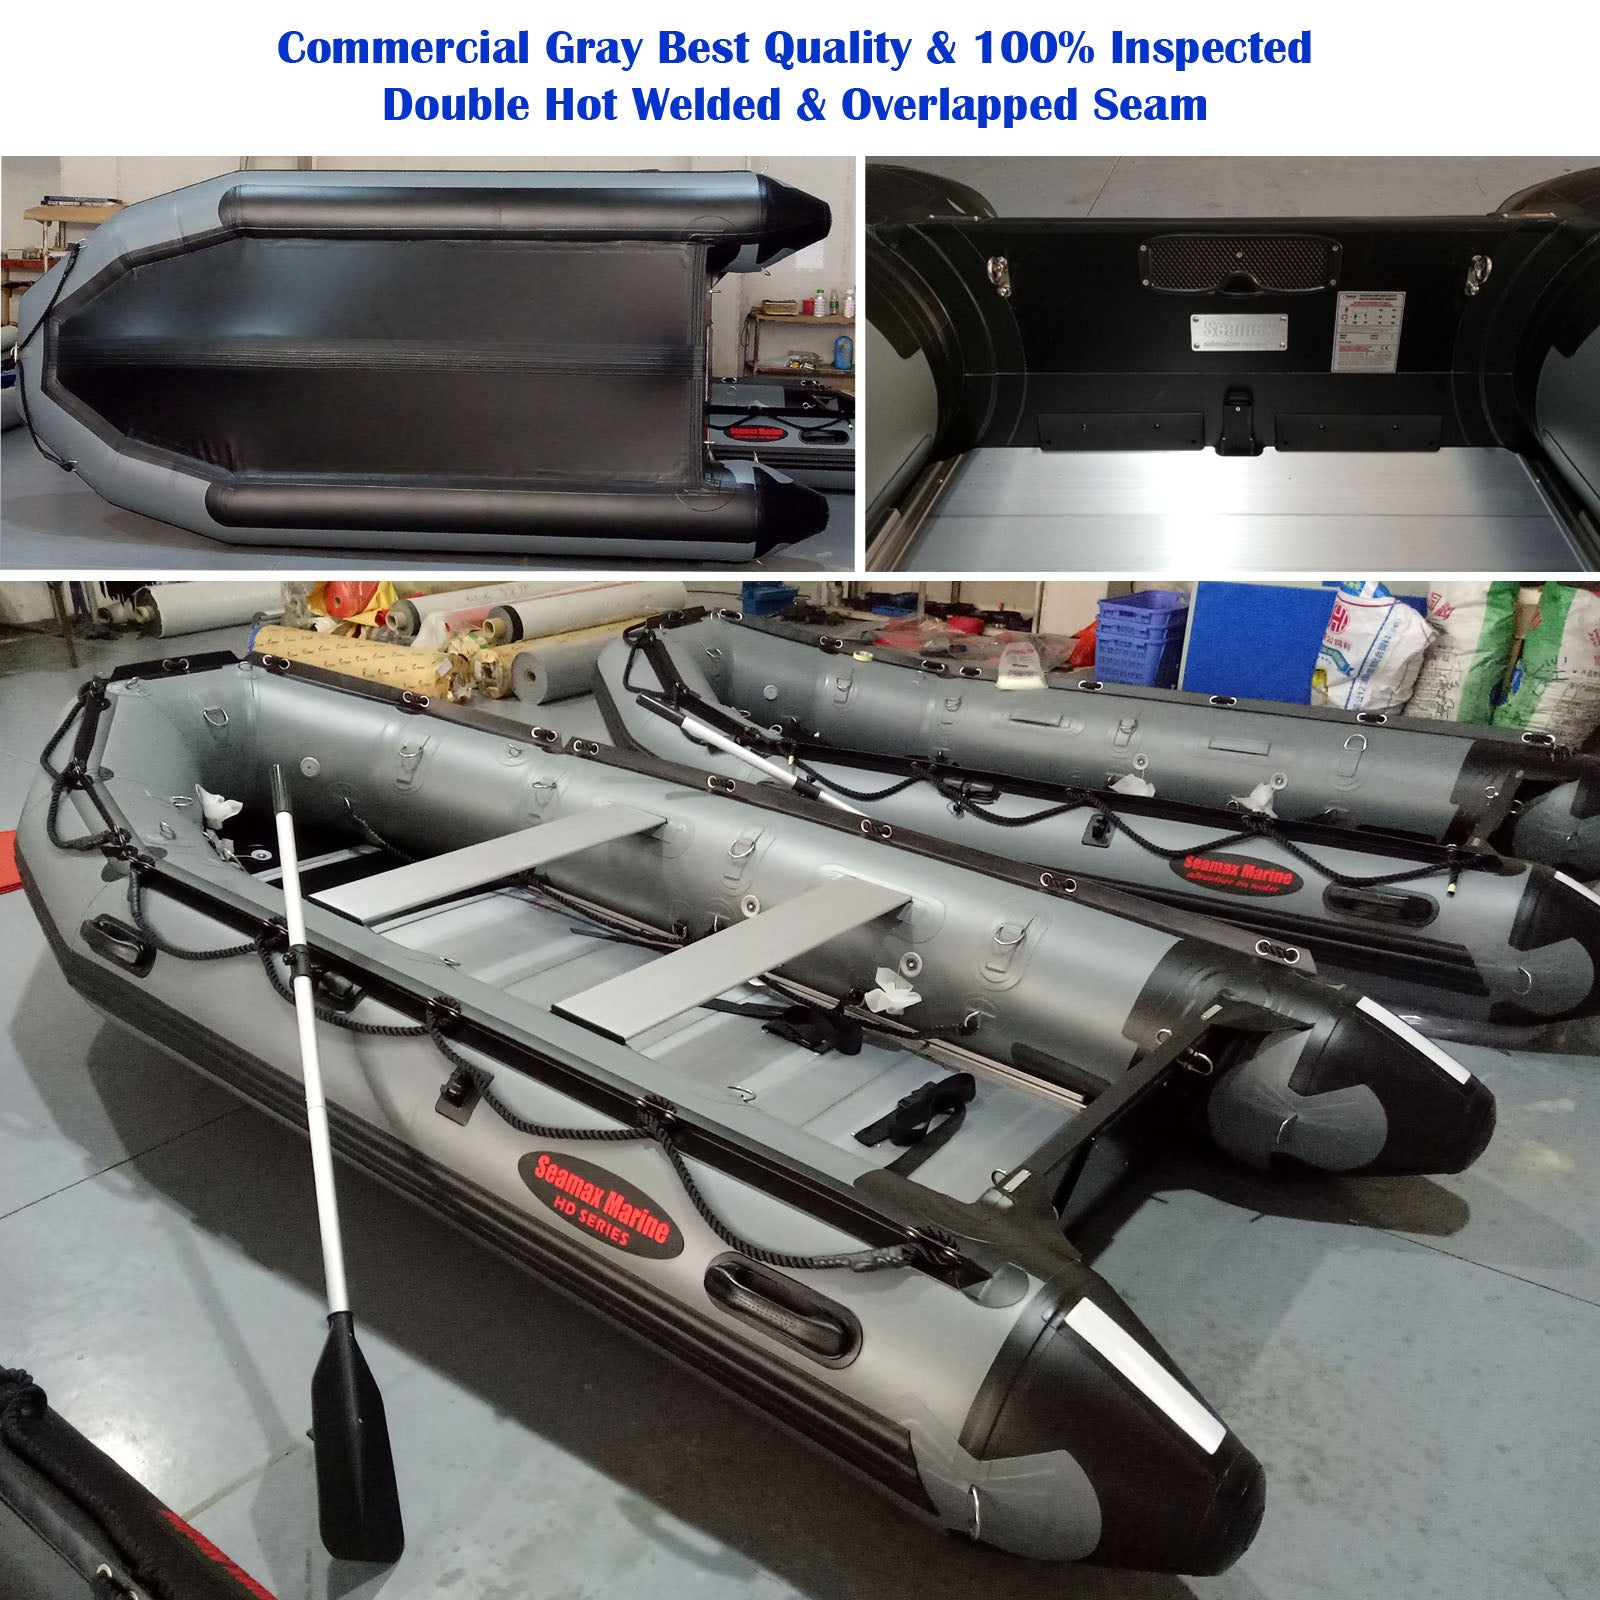 Seamax Ocean380T 12 5 Feet Commercial Grade Inflatable Boat, Max 7  Passengers and 25HP Rated